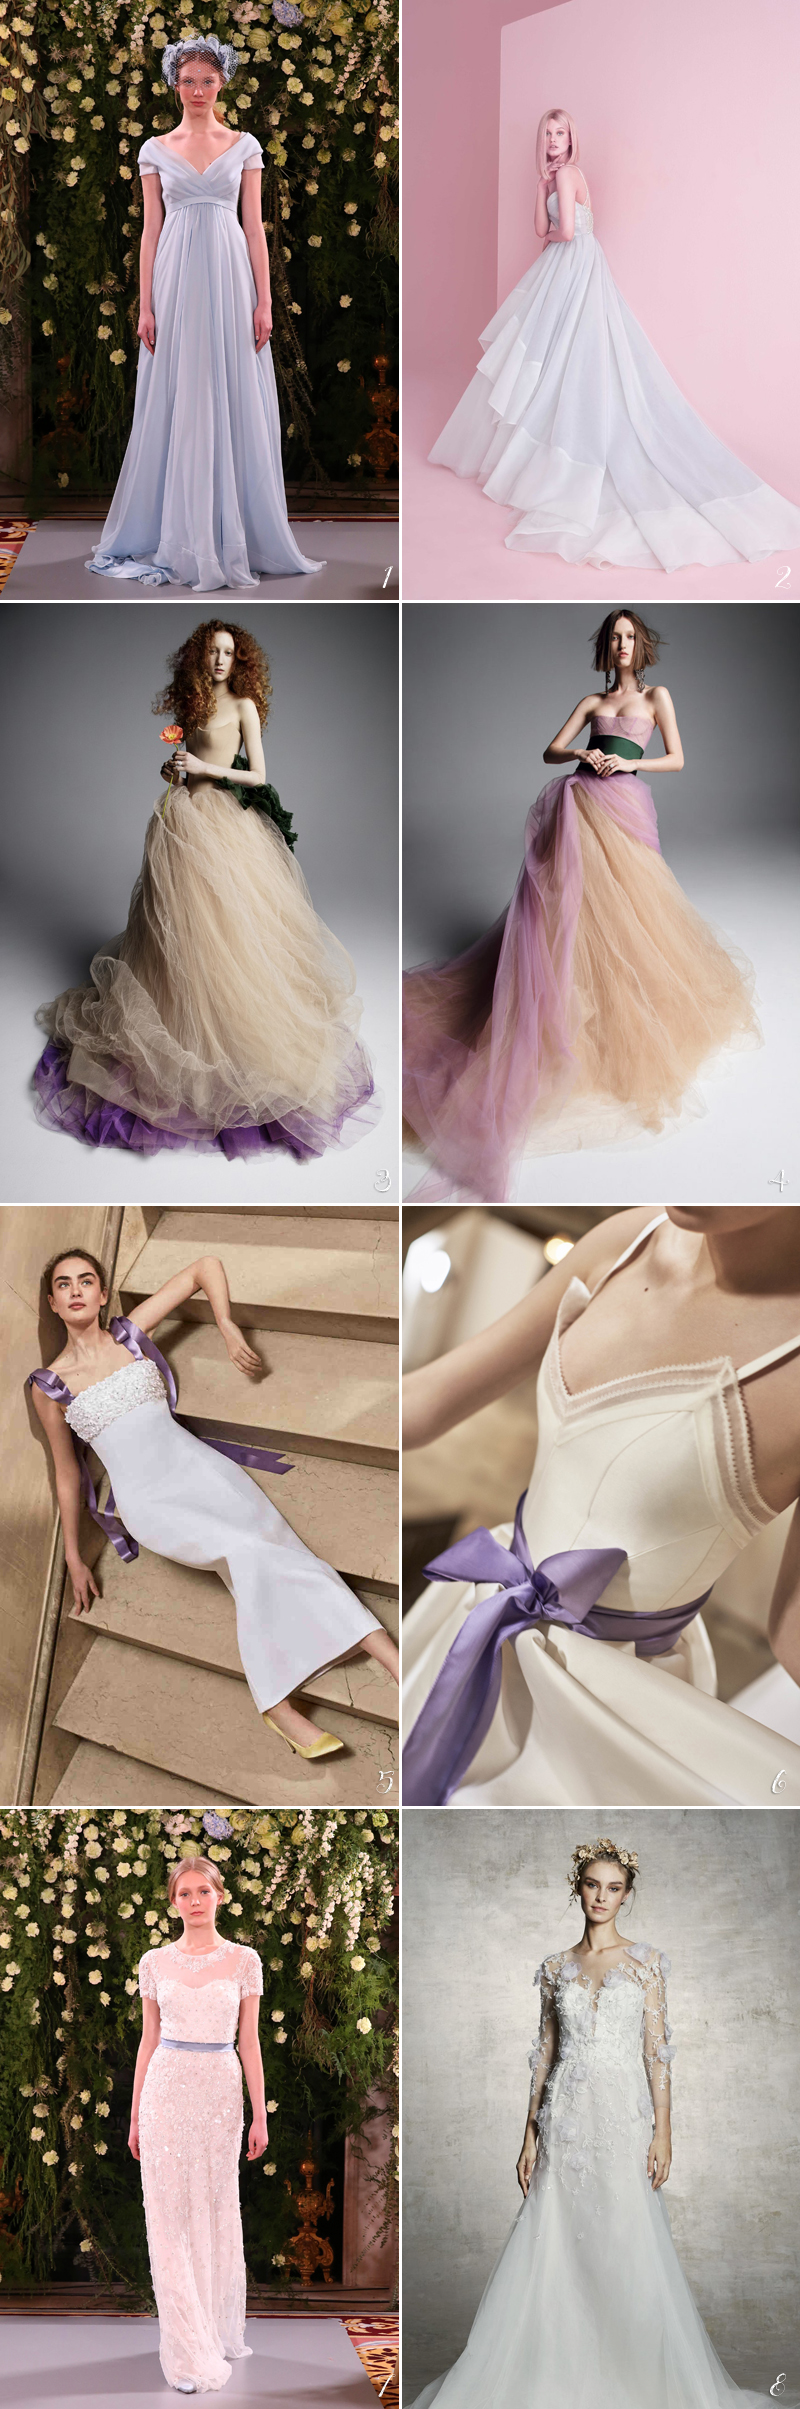 2019weddingdresstrend05-lavender